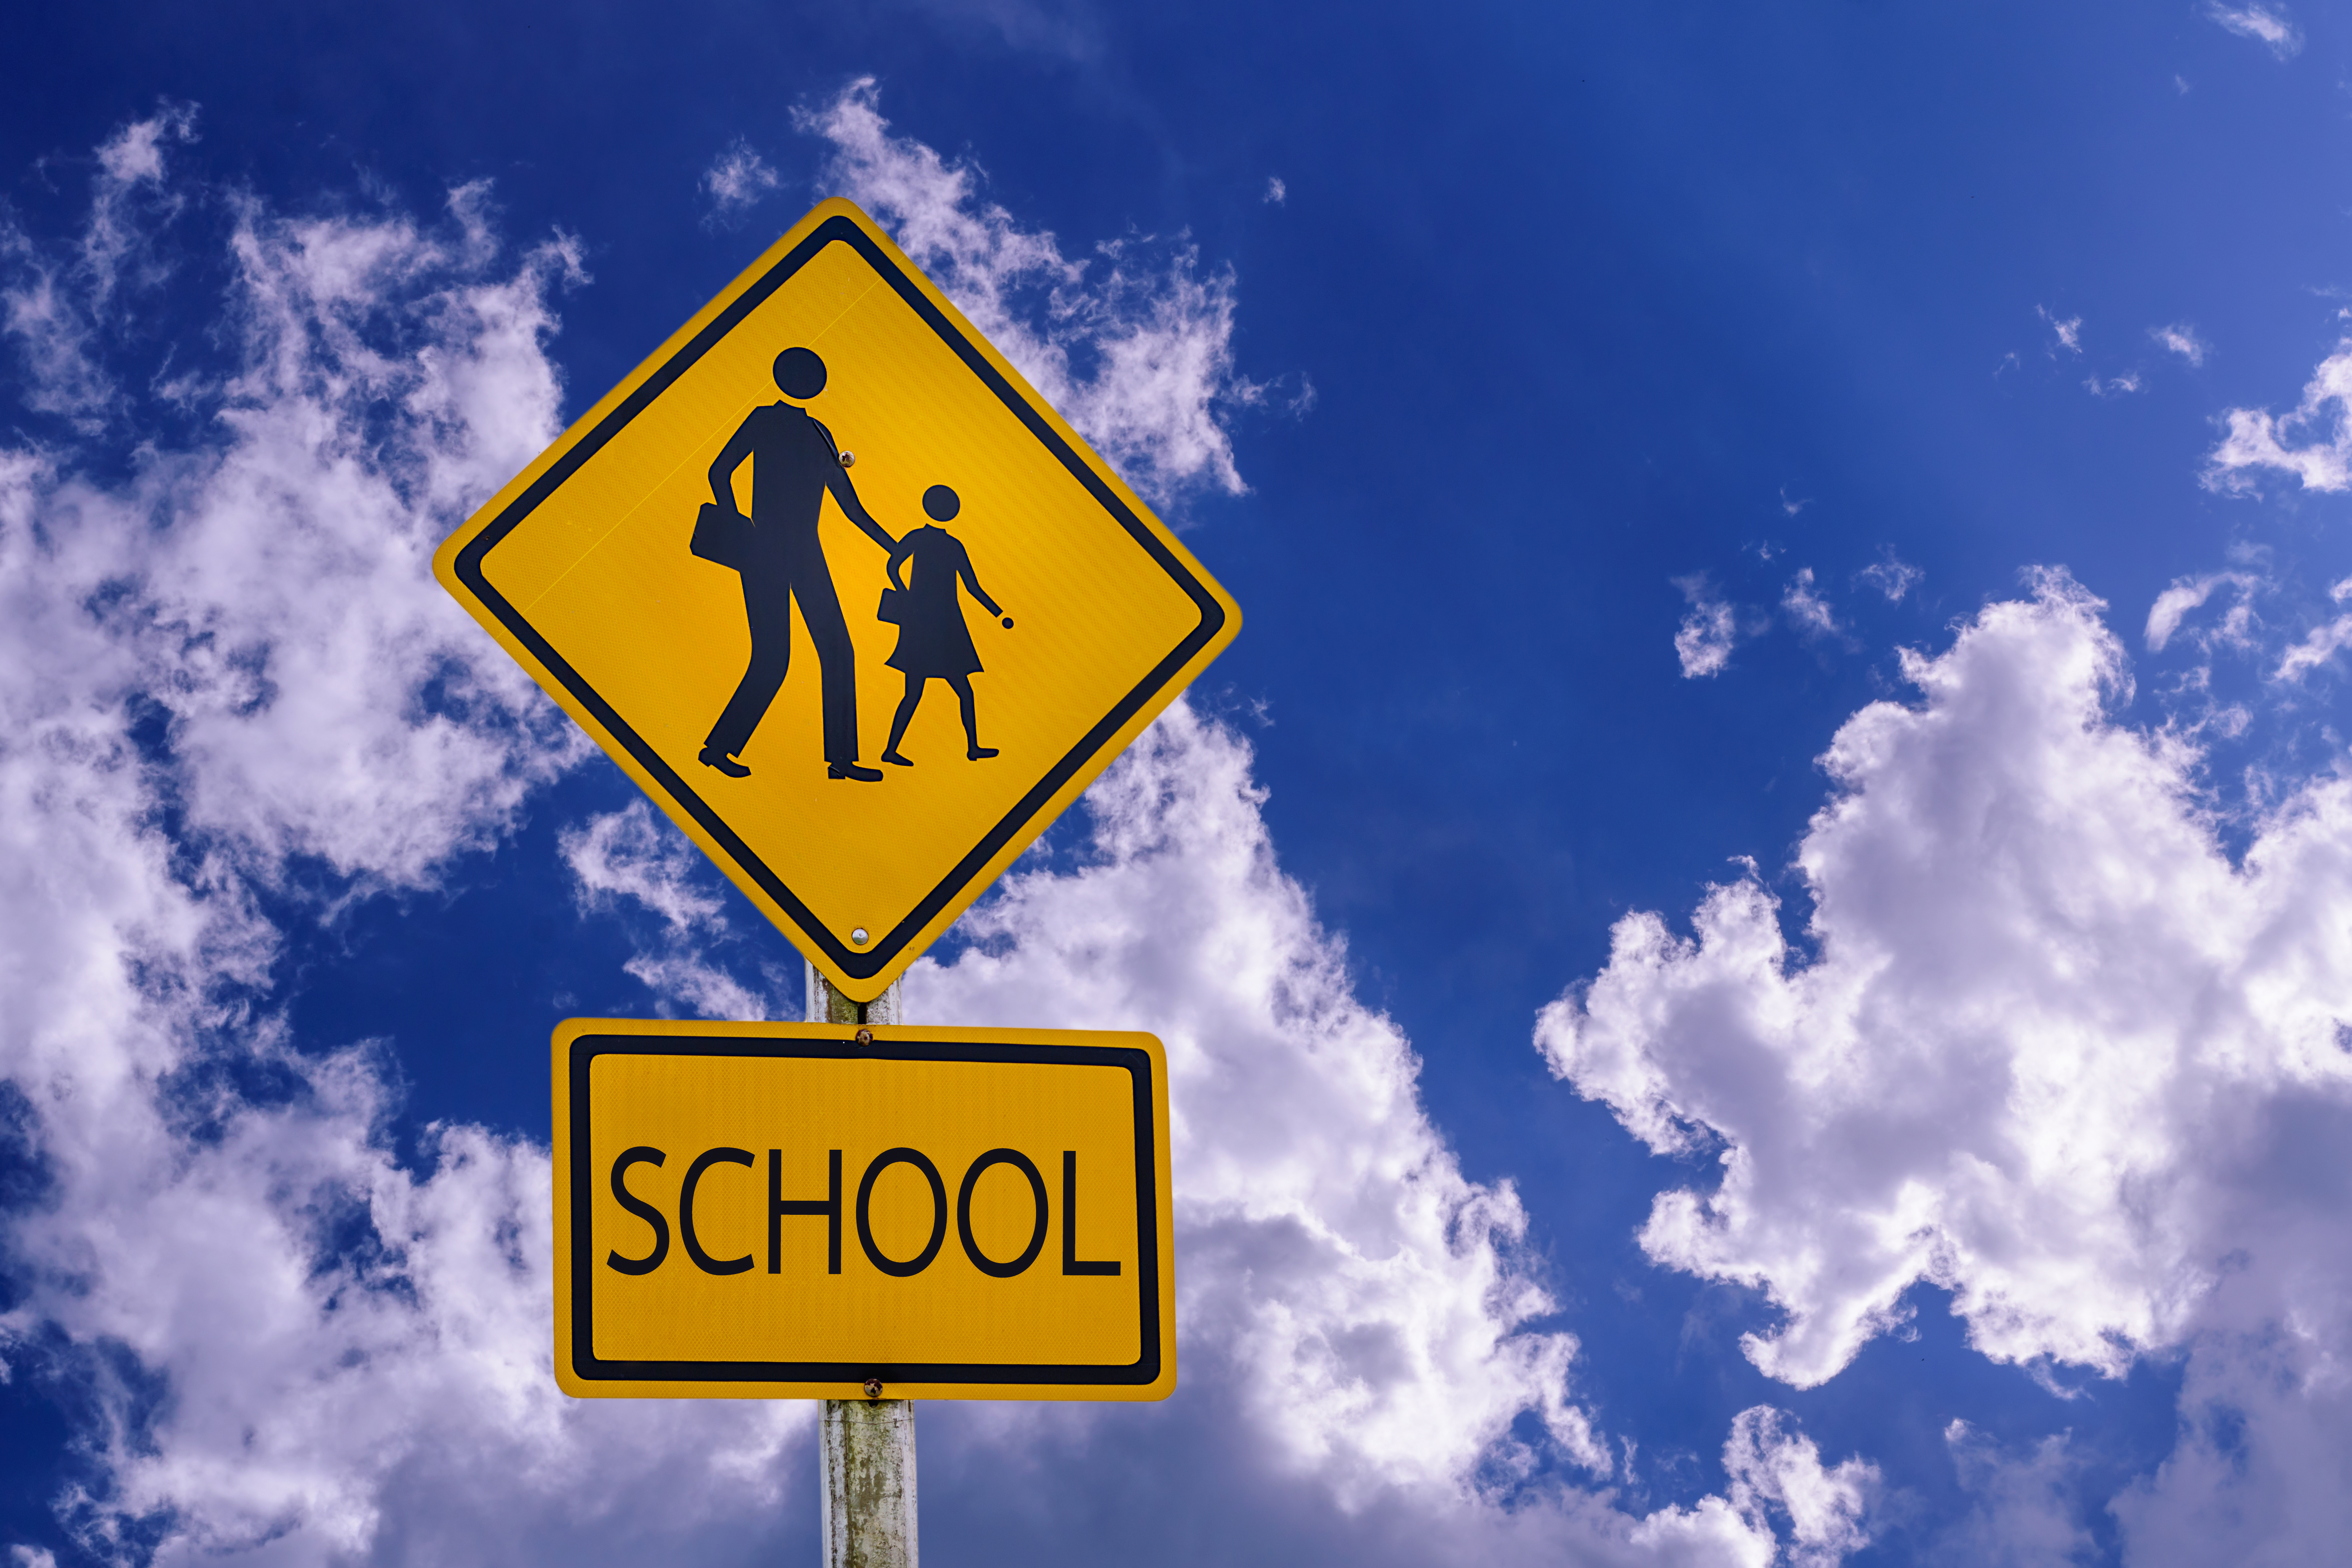 Public Relation Campaign Shines Light On Proactive School Safety